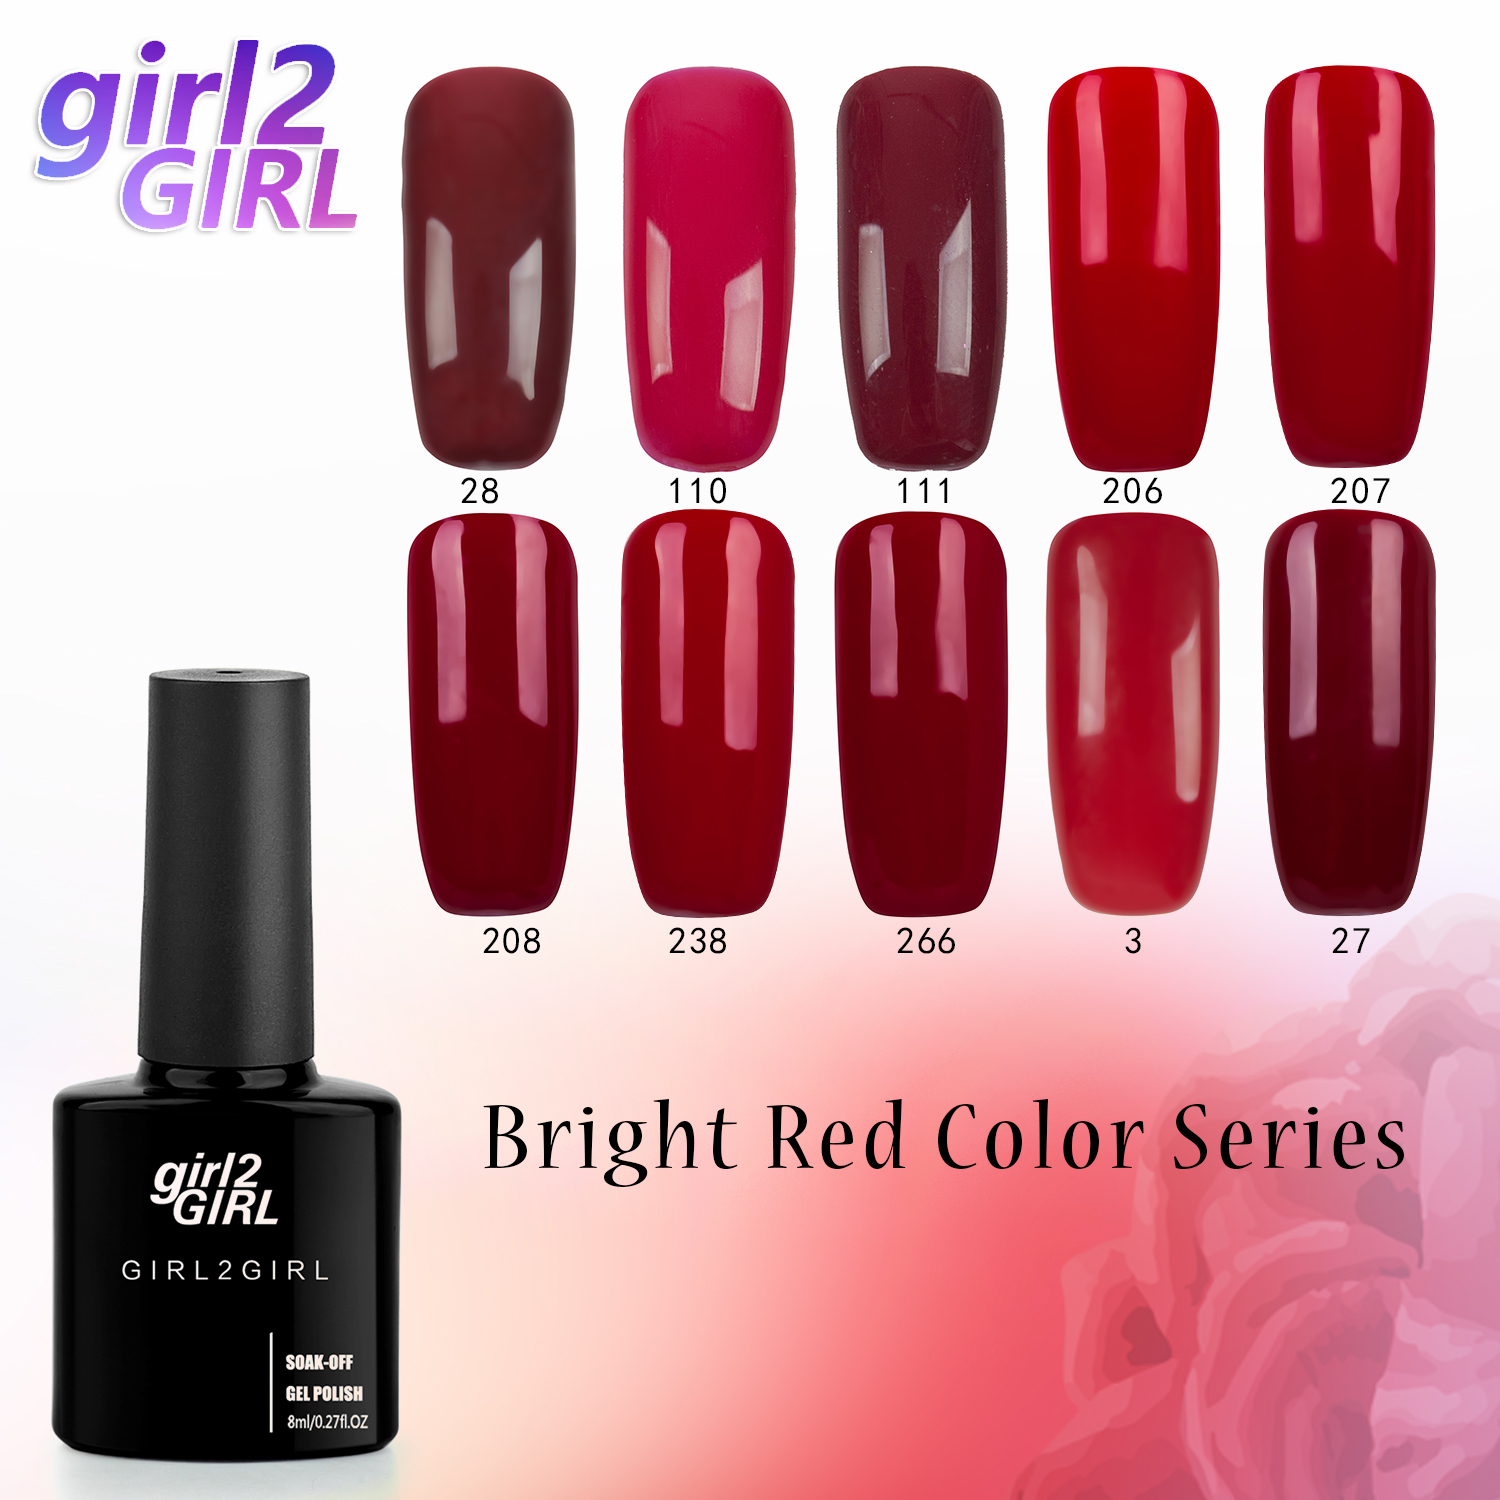 girl2Girl UV Gel Nail Manicure 8ml pure color UV Nail Polish Sequins Gel Nail Soak Off Gel Polish Dark red set